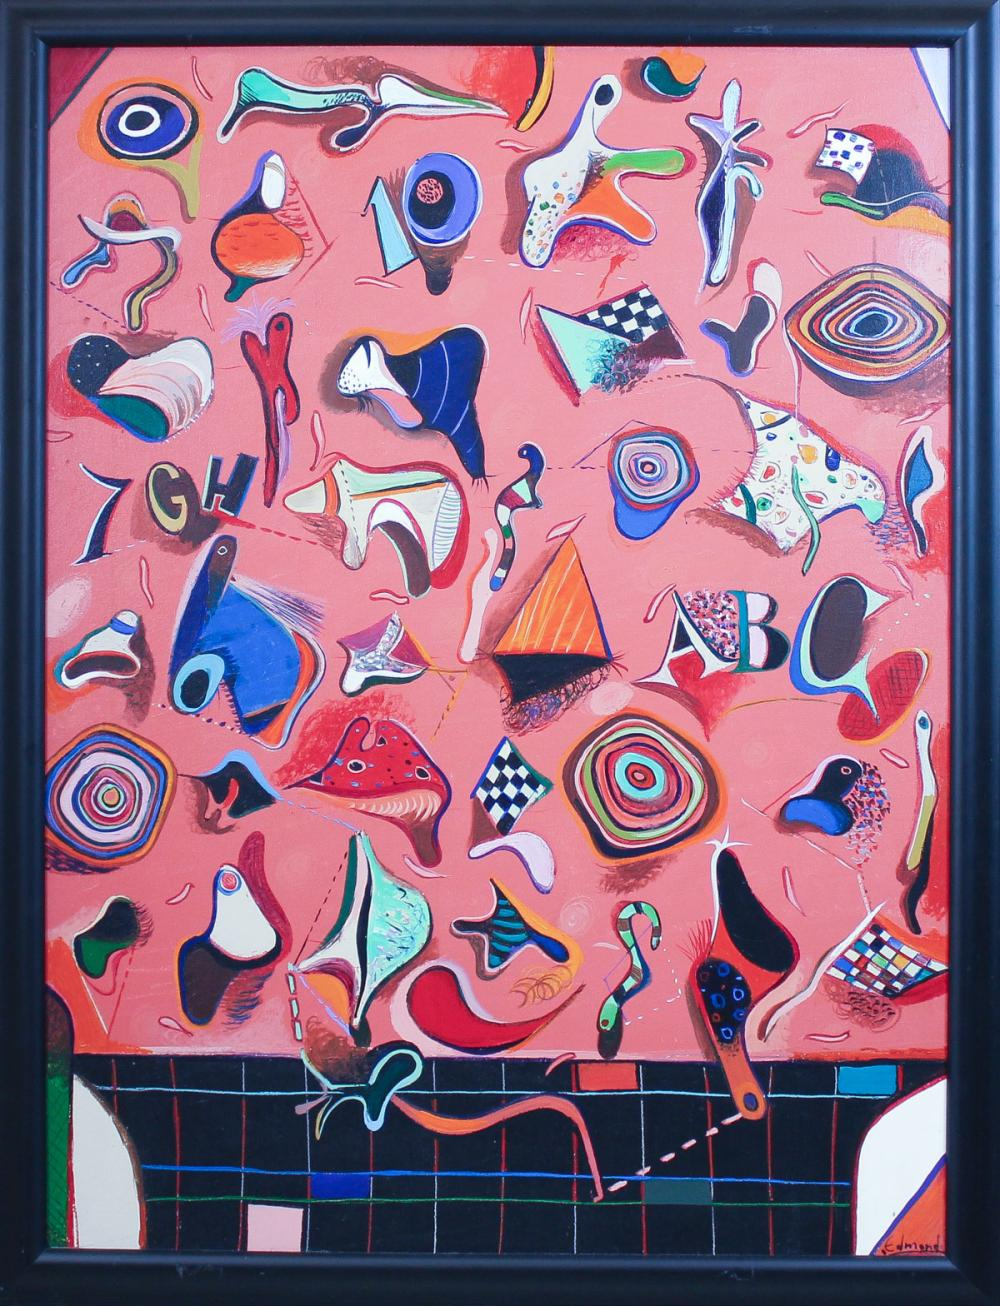 Lot 454: EDMOND DEMIRDJIAN (Bulgaria, 1951-2009) acrylic on